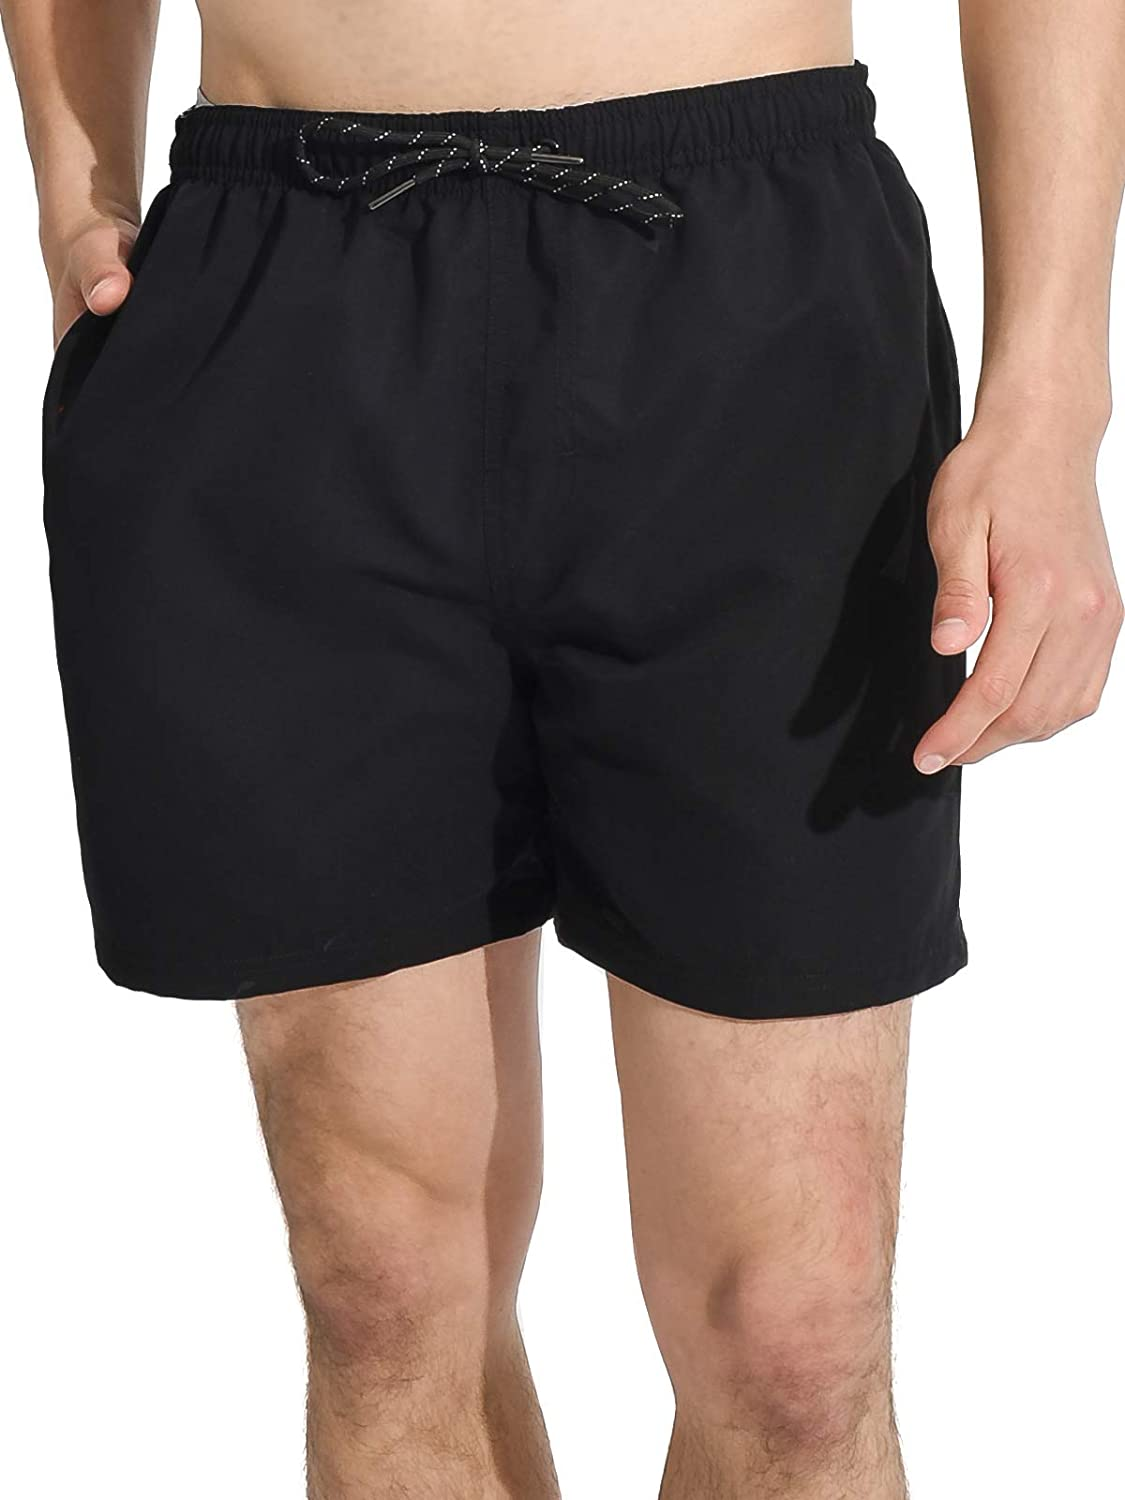 Actleis Mens Swim Trunks Board Shorts Short Quick Dry Swim Shorts with Mesh Lining us-19001